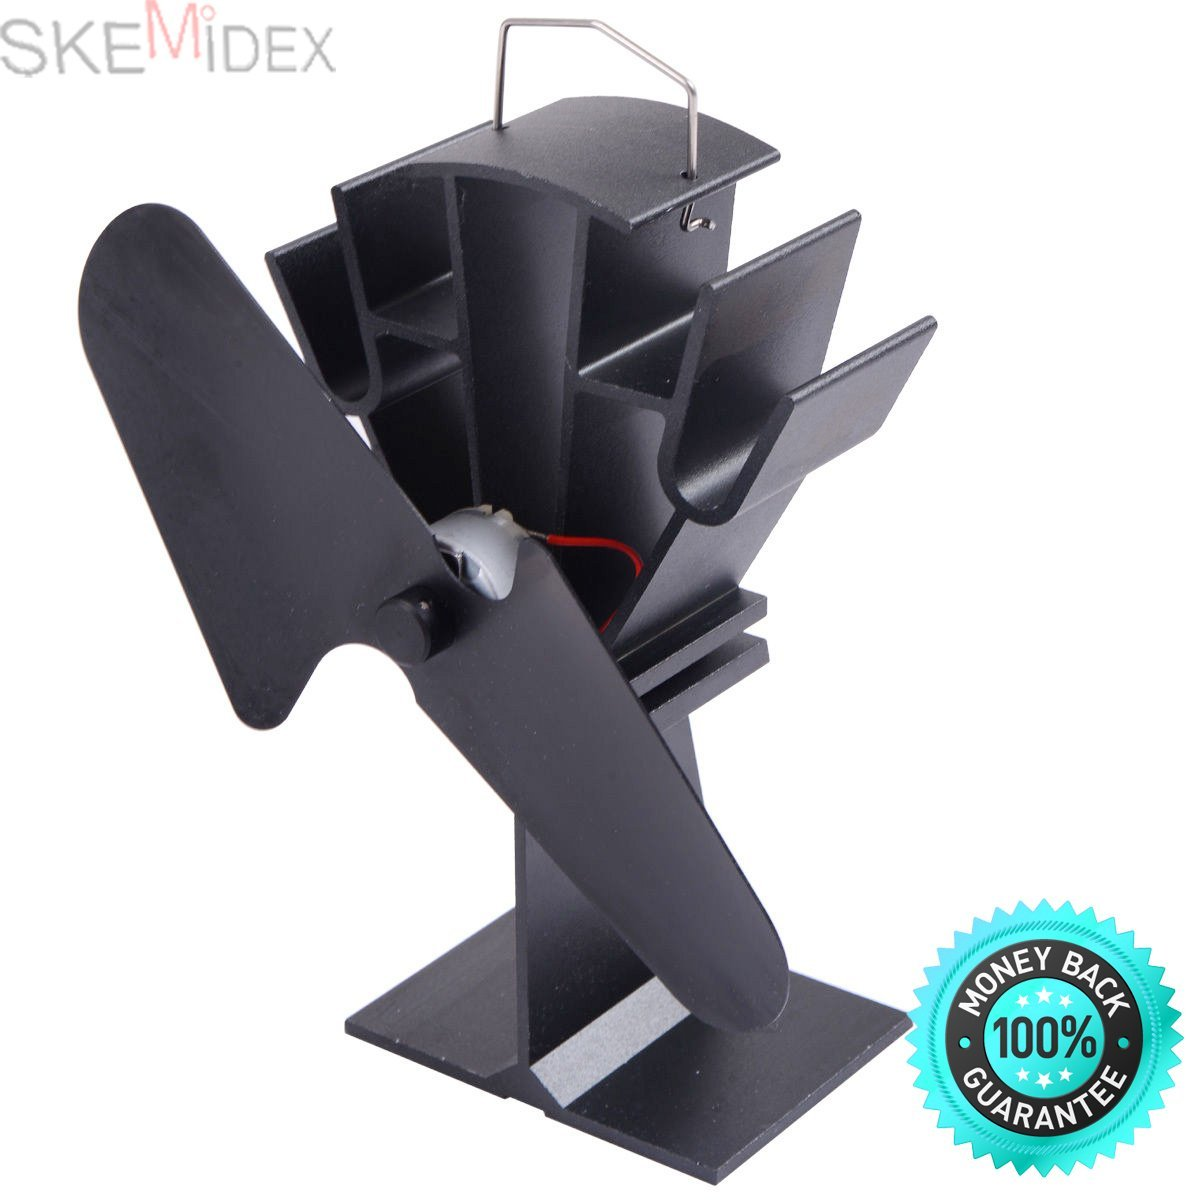 SKEMiDEX---HEAT POWERED WOOD STOVE FAN BLACK Eco Friendly. Economical, heat powered manual stove fan - increases the efficiency of your freestanding stove oven or wood/ log burner